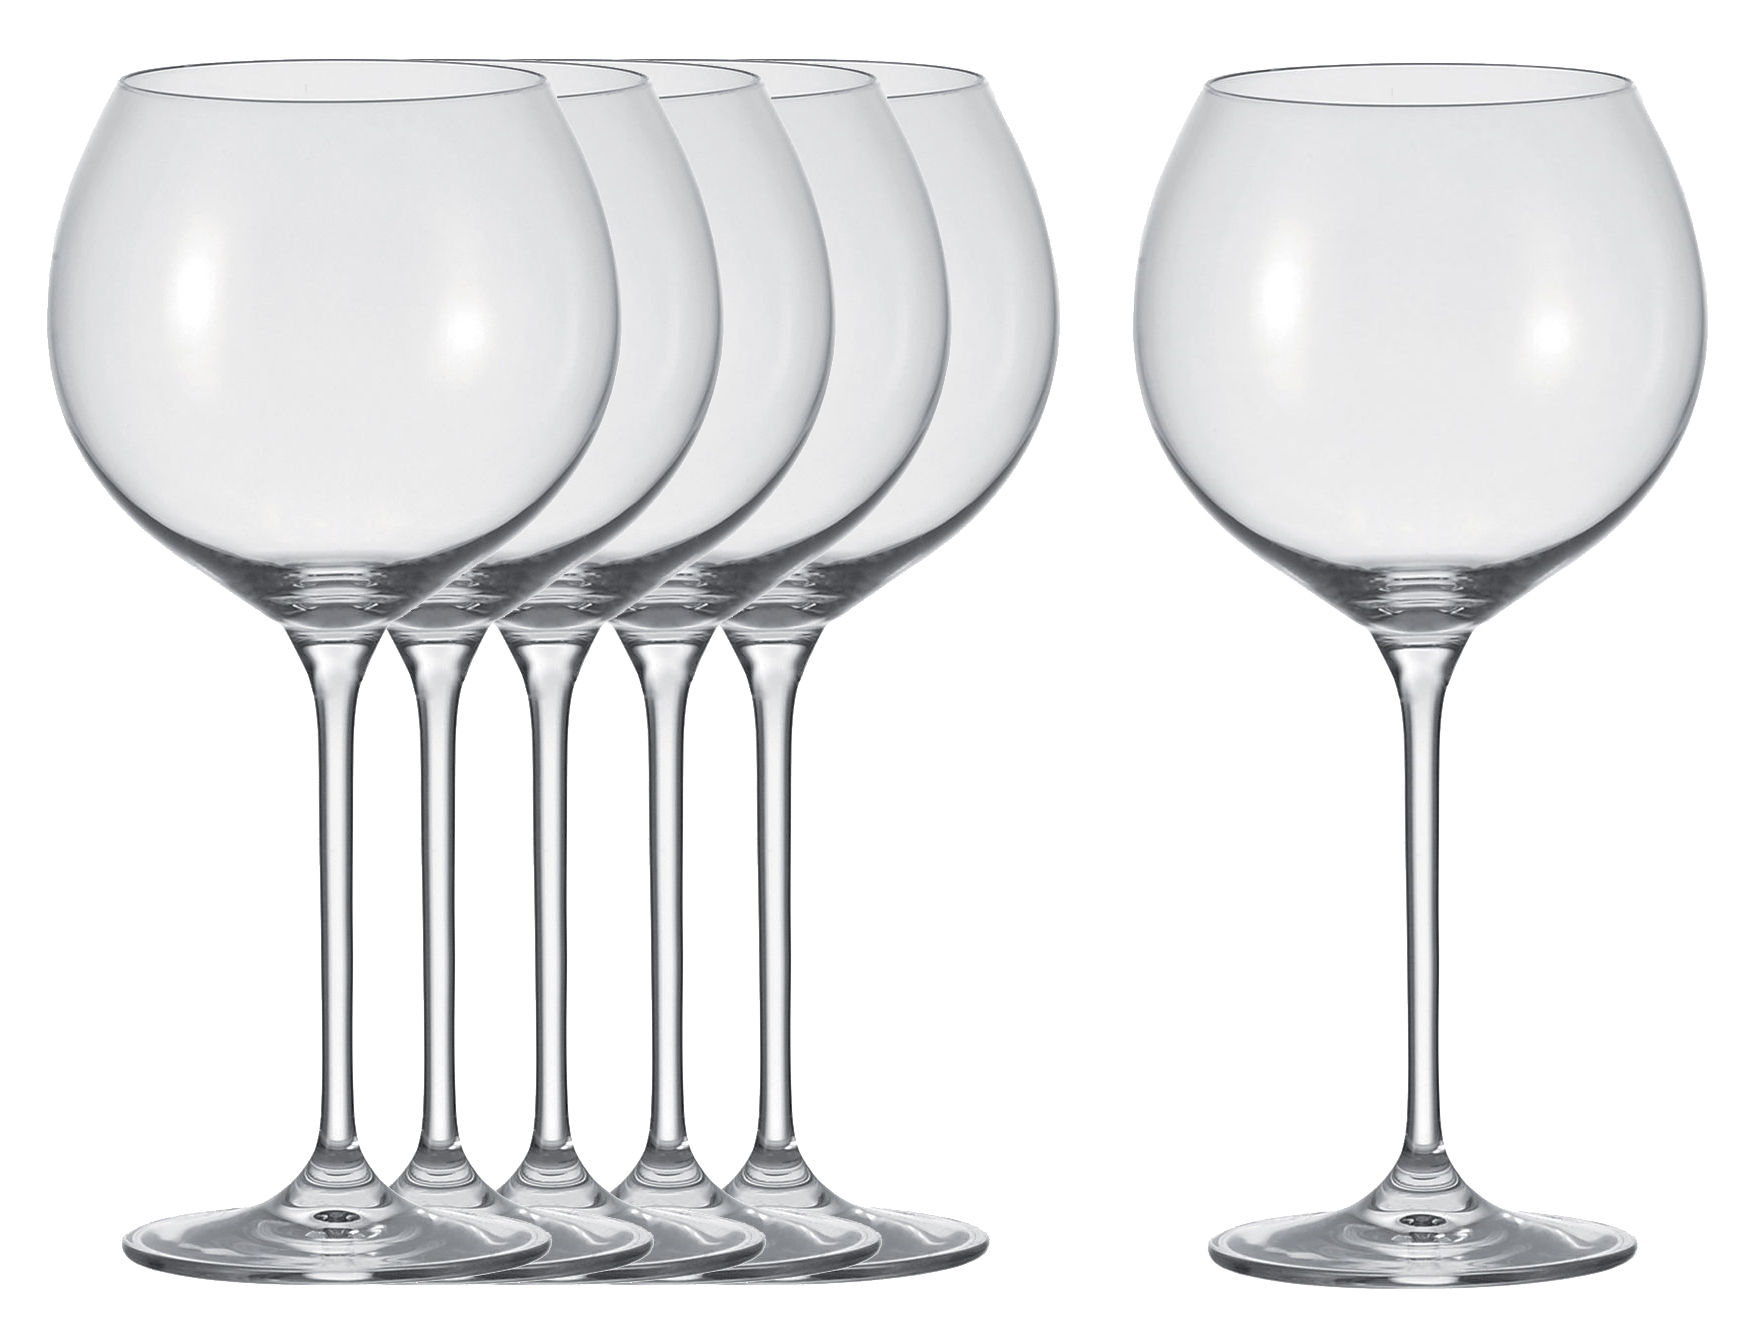 verre vin cheers lot de 6 verres bourgogne transparent leonardo. Black Bedroom Furniture Sets. Home Design Ideas